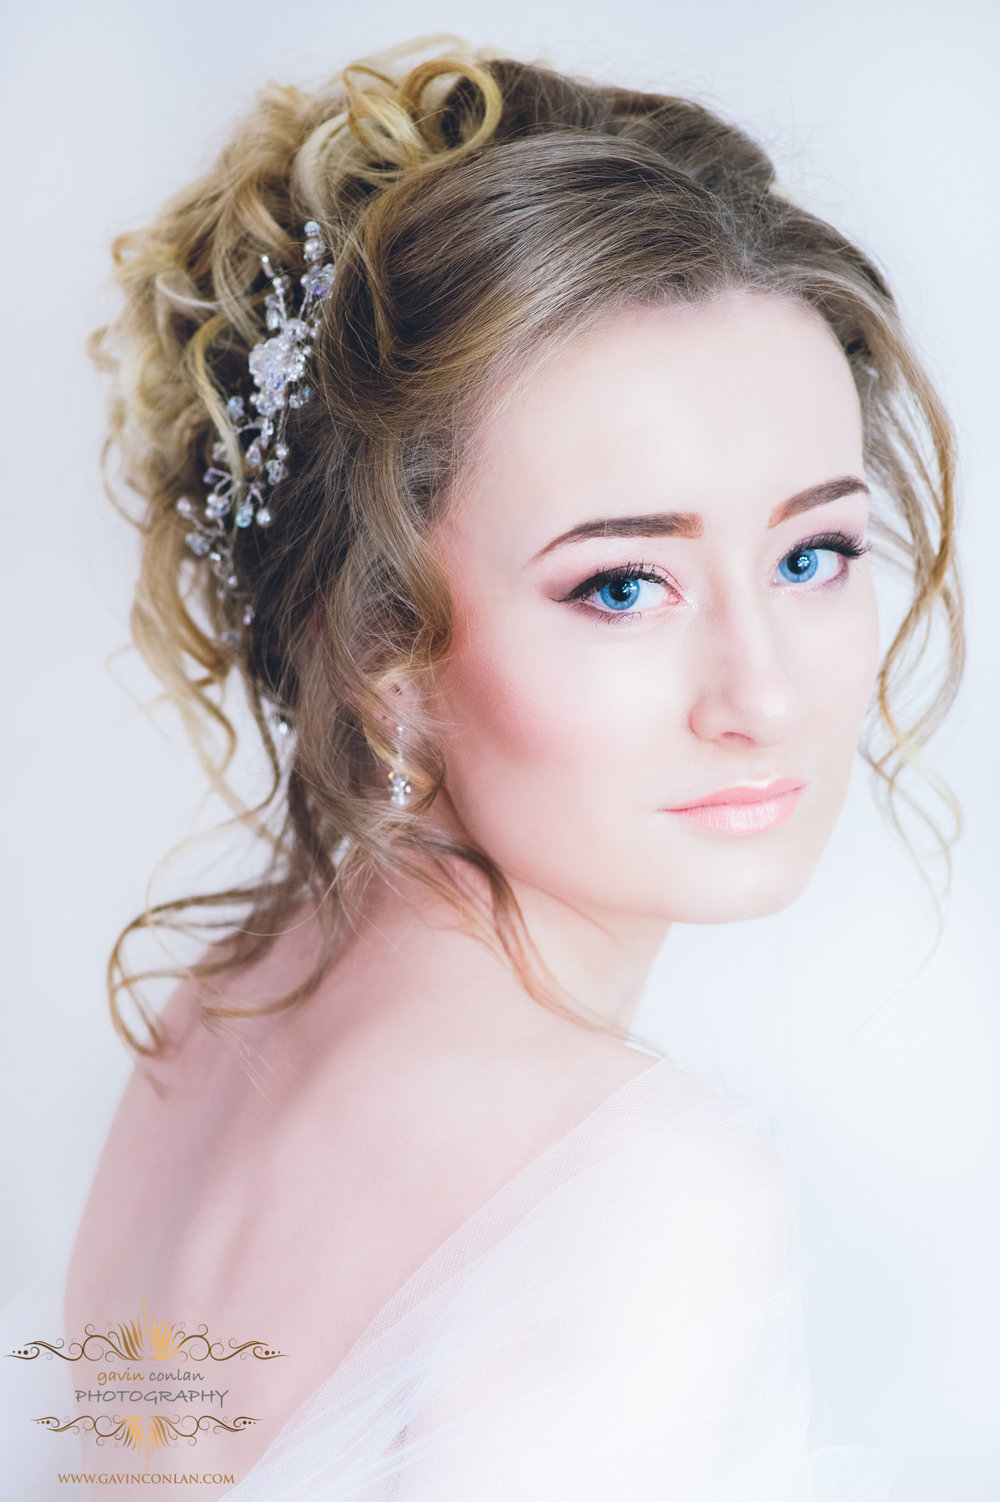 creative-bridal-hair-make-up-jewellery-photo-shoot-gavinconlanphotography-13